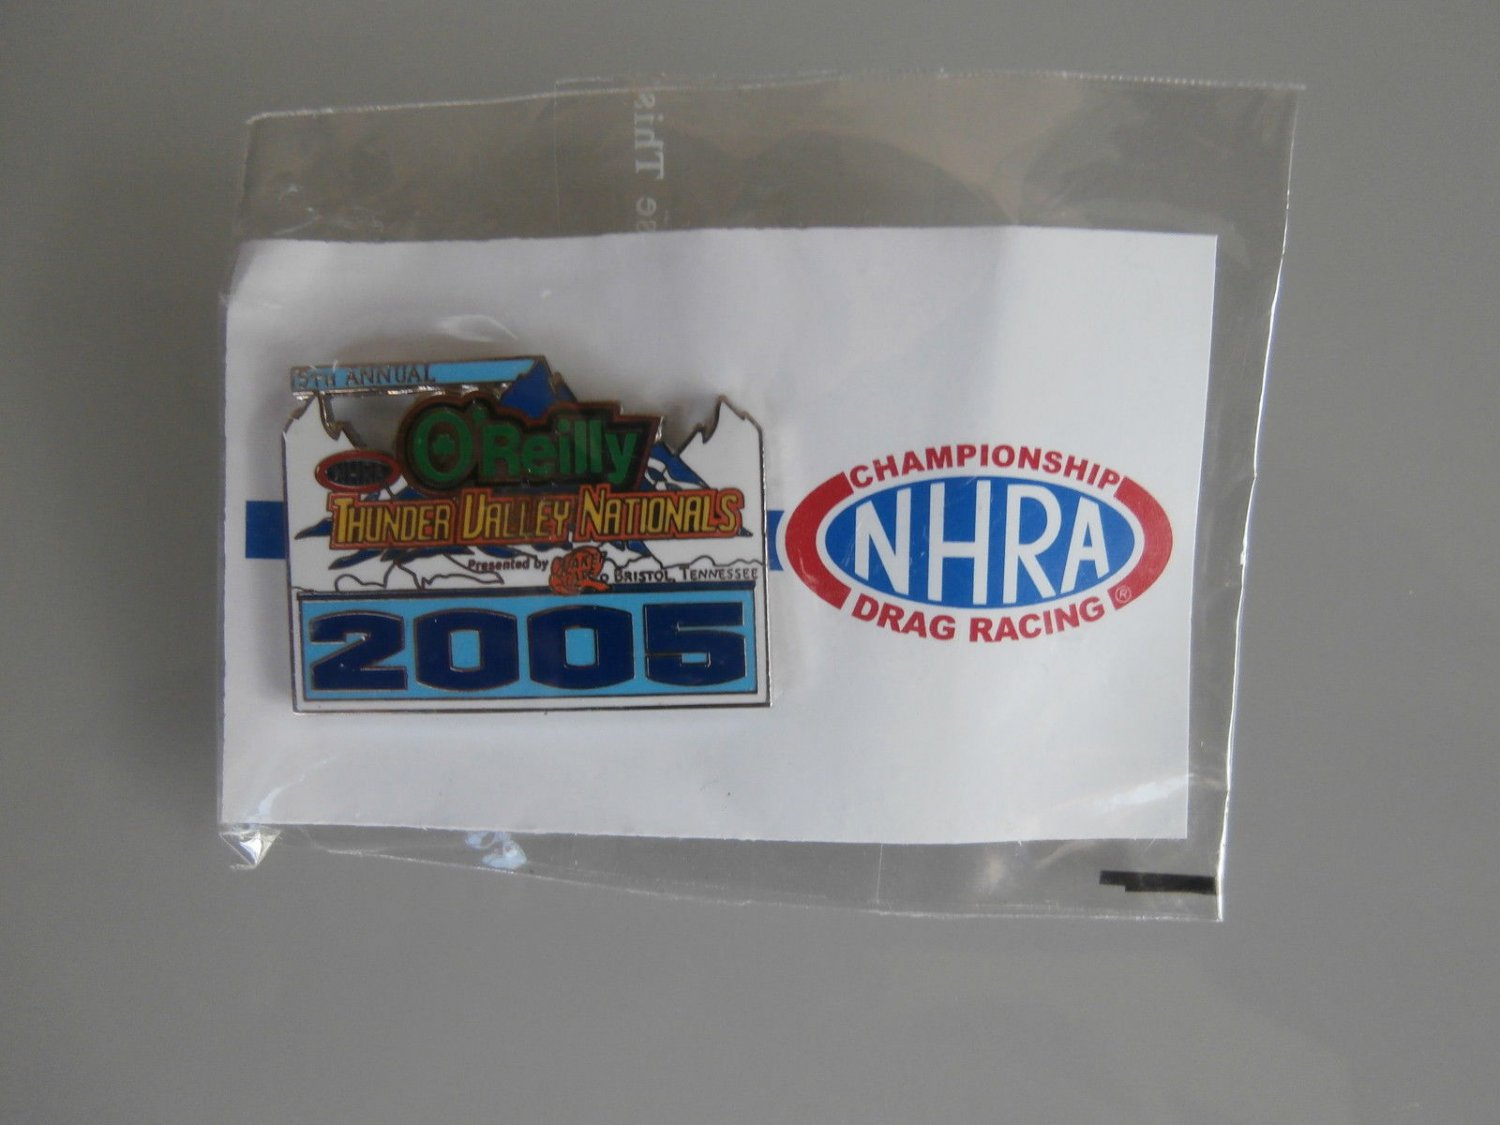 2005 NHRA Event Pin Bristol